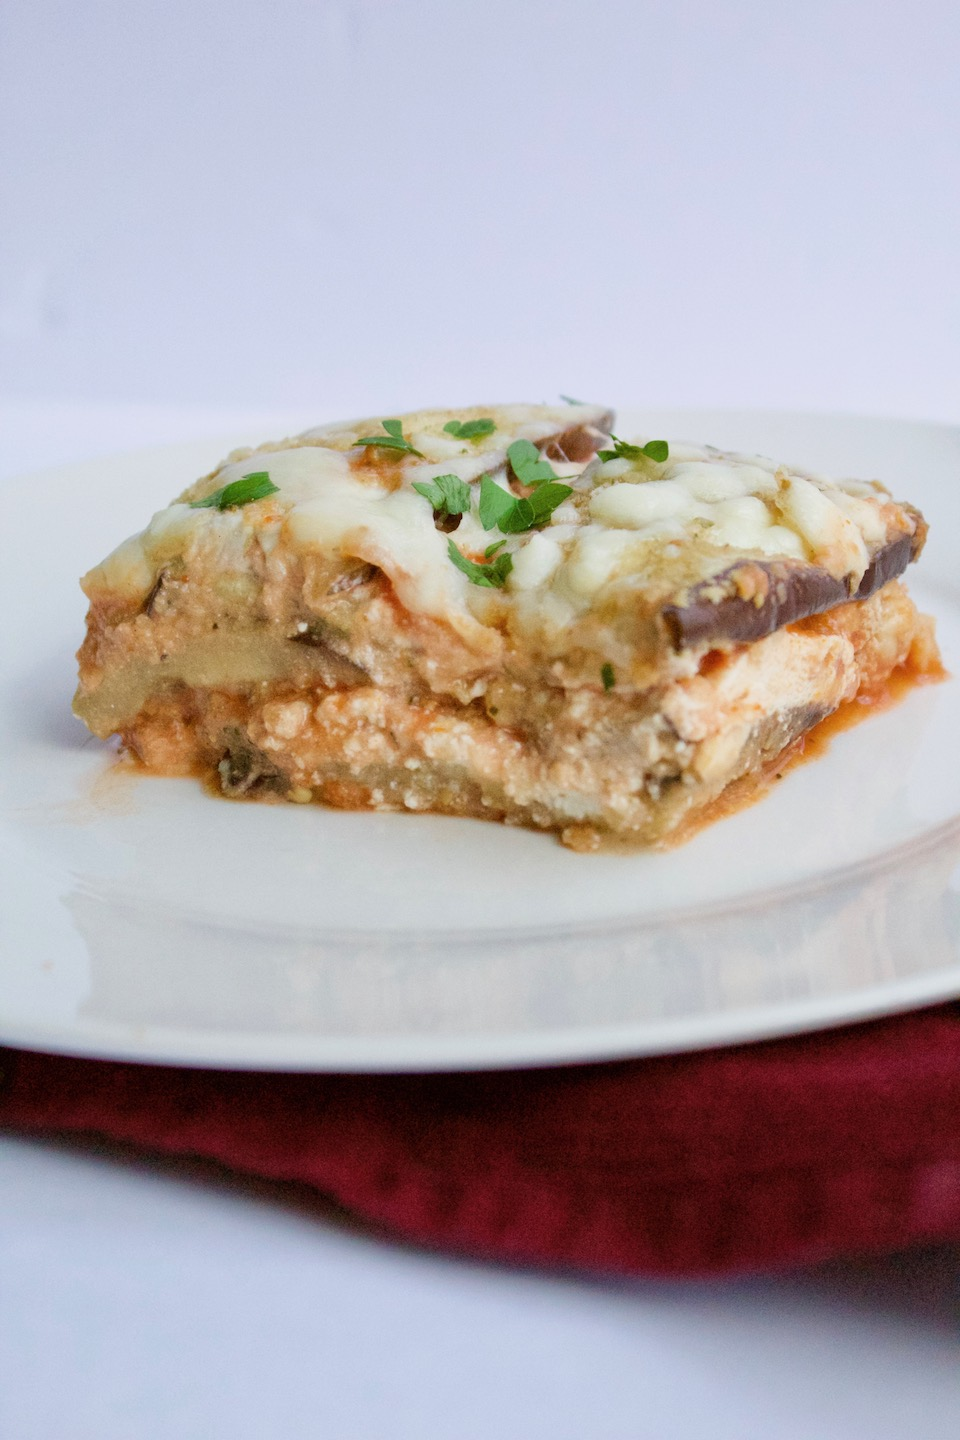 Low-Carb Eggplant Parmesan Lasagna -- Two Italian favorites in one recipe! Eggplant parm noodles make this lasagna a healthy dinner that's both #low-carb and #gluten-free. | @sinfulnutrition